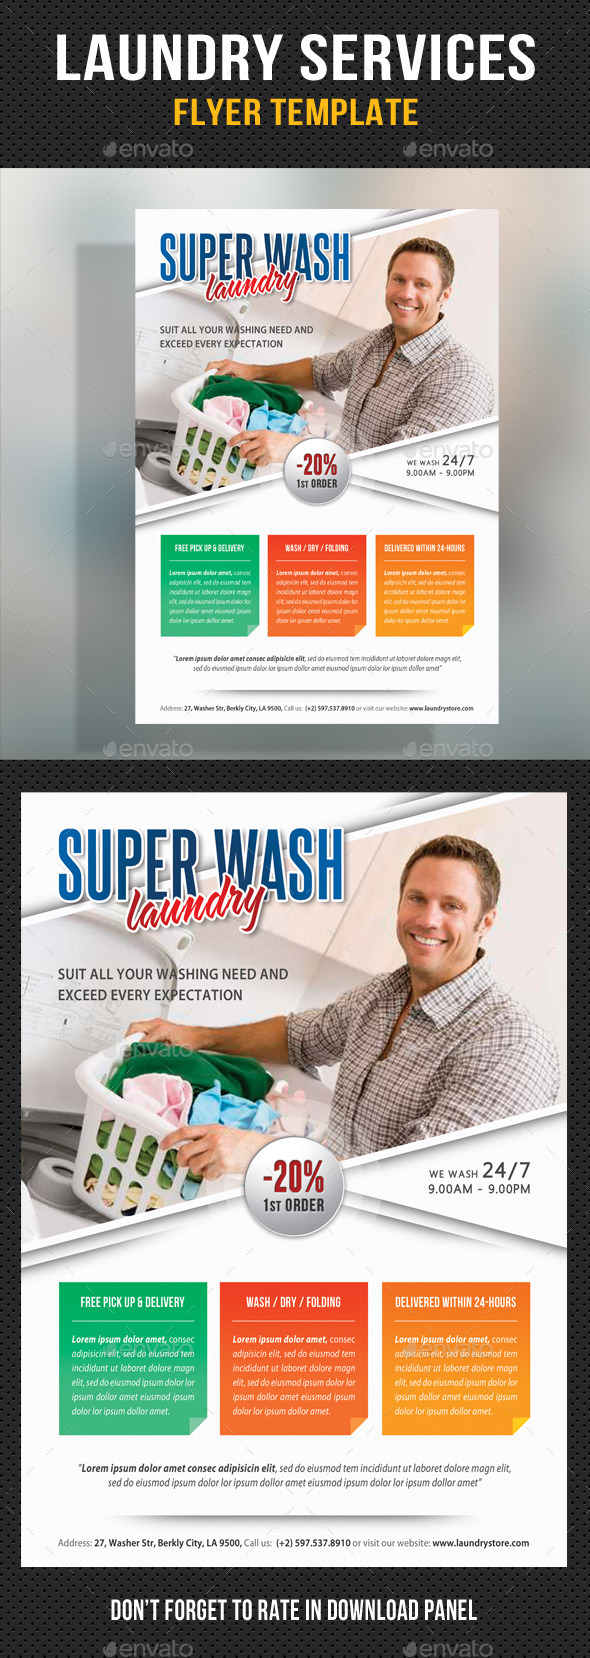 Laundry services flyer template v03 by rapidgraf for Laundry flyers templates